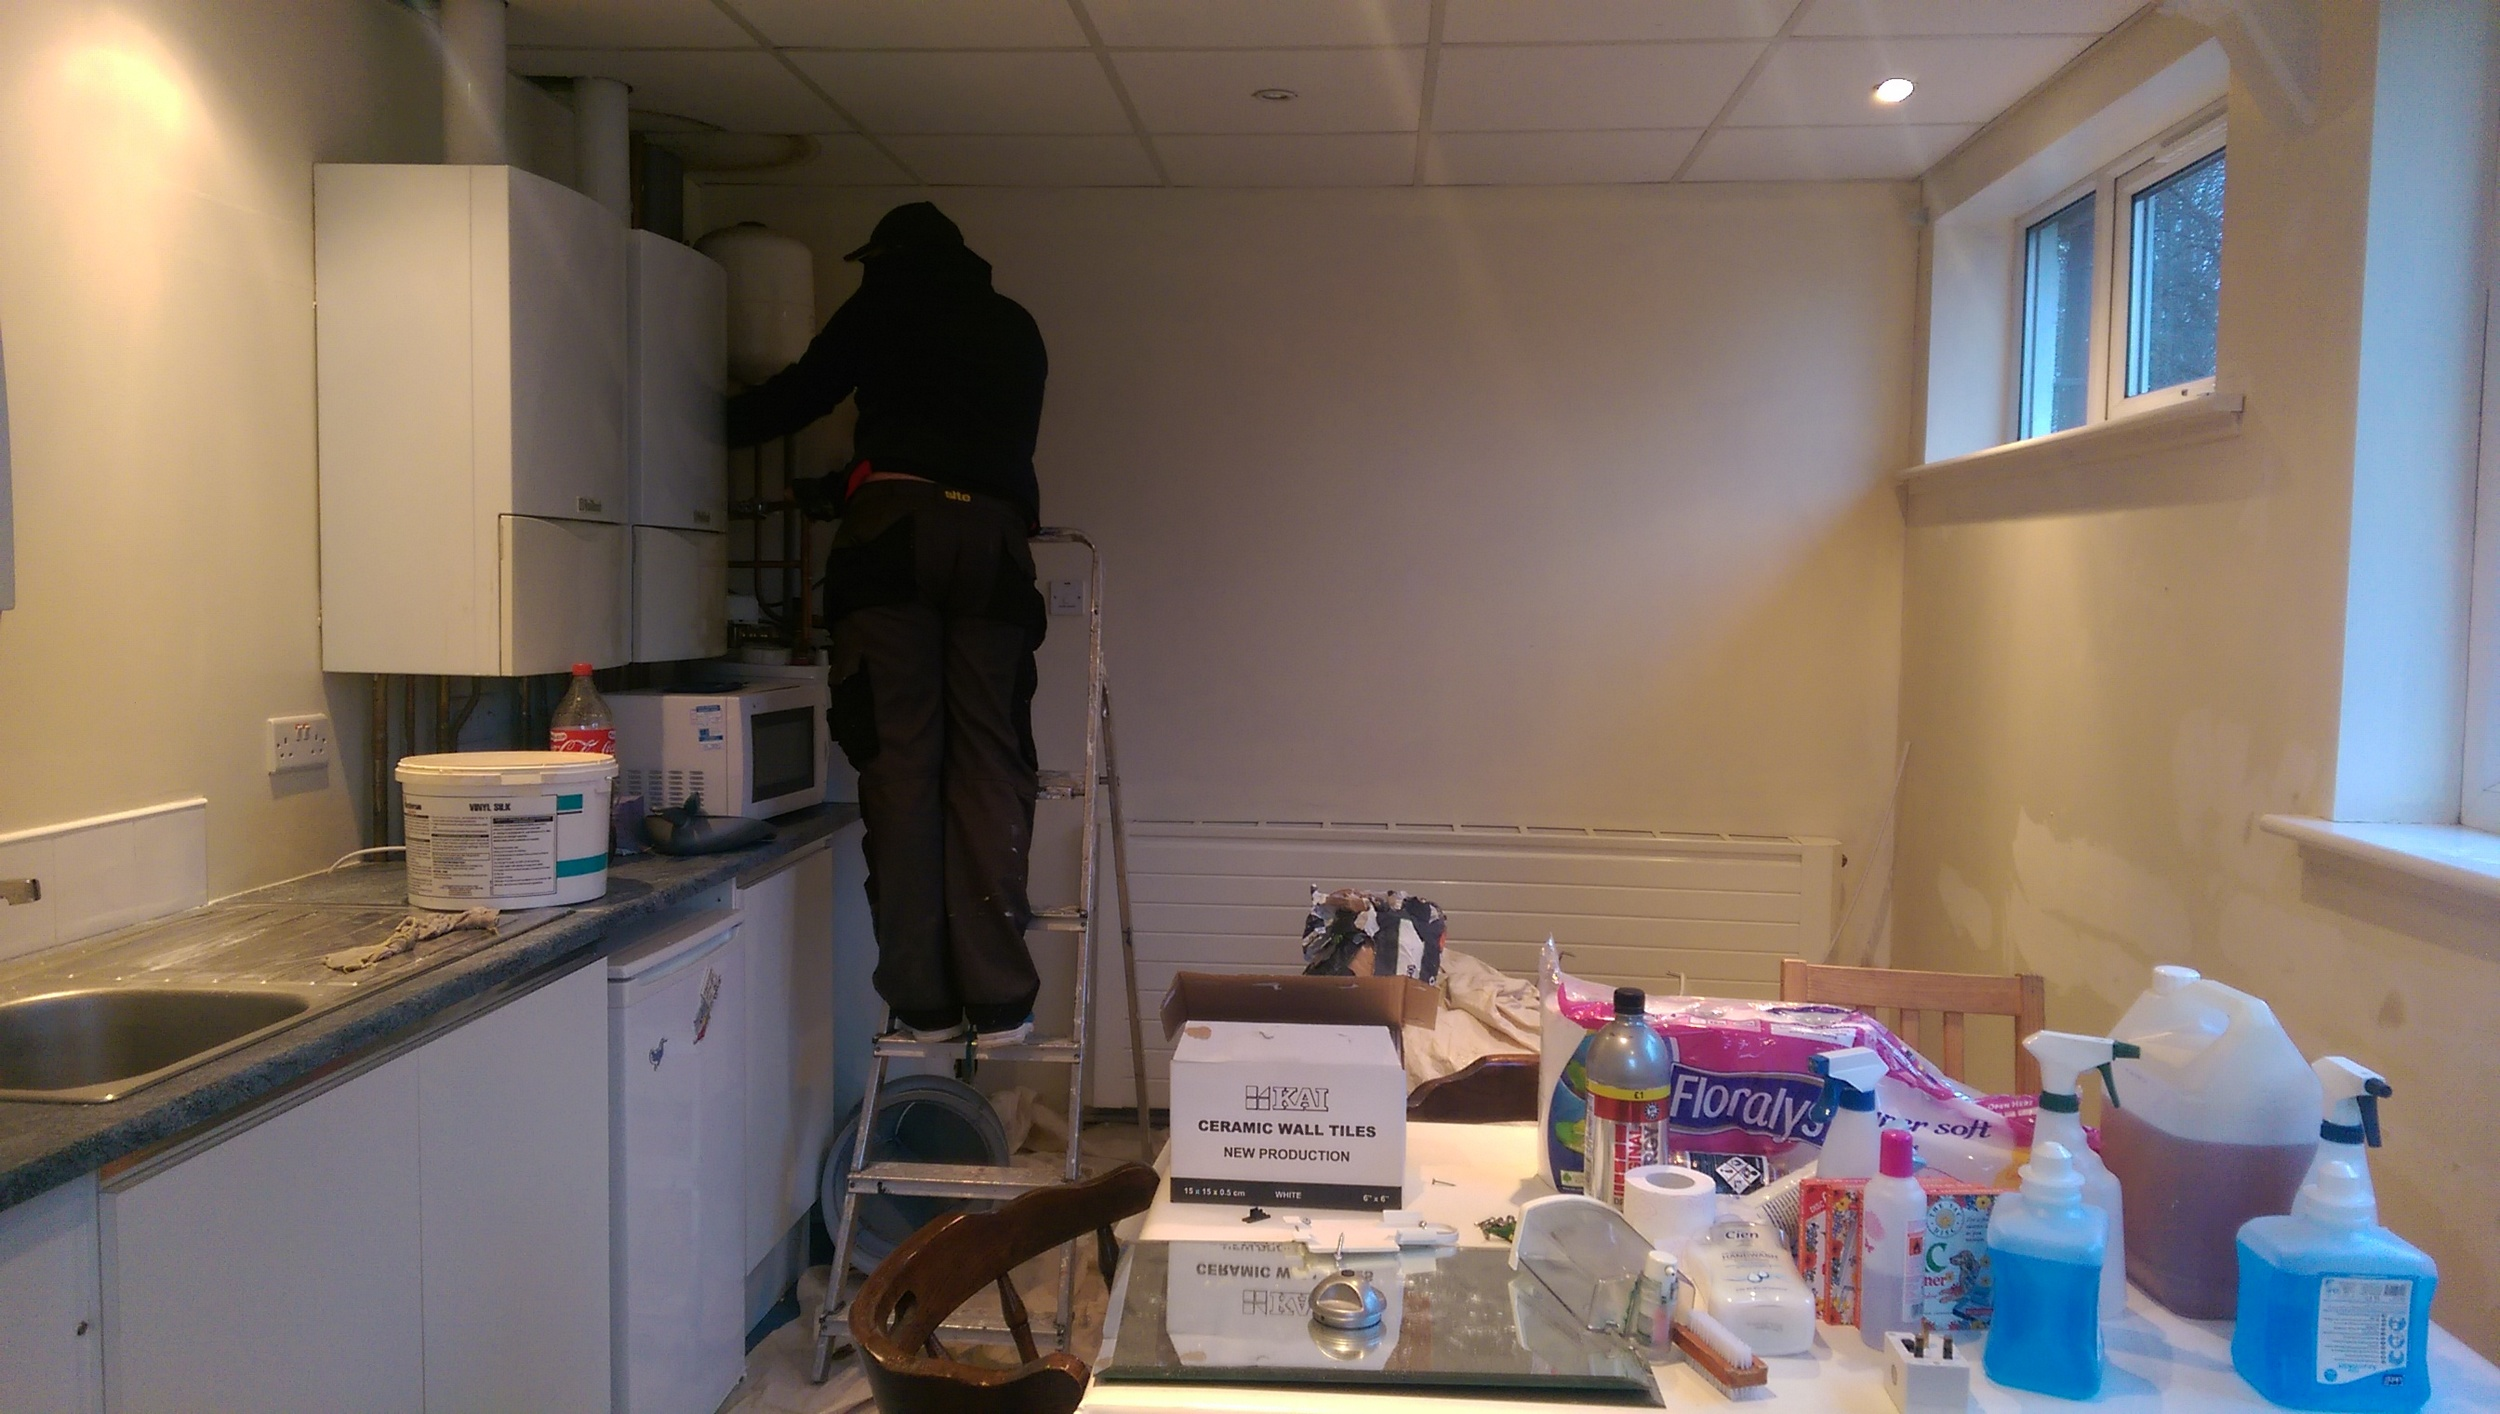 The staff room getting a makeover